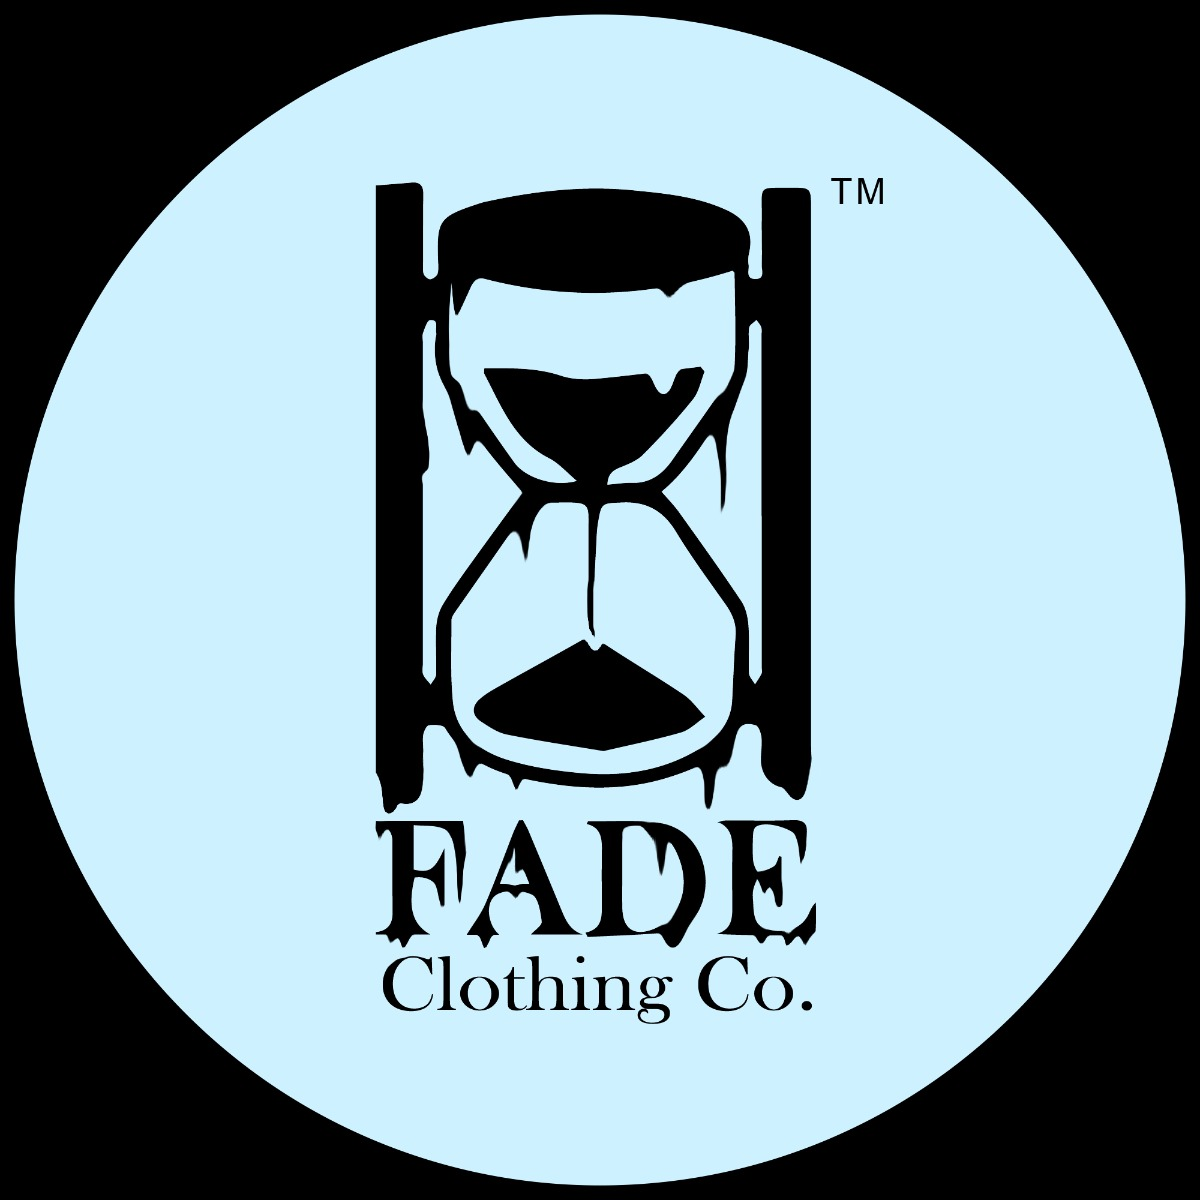 FADE Clothing Co. Profile Picture